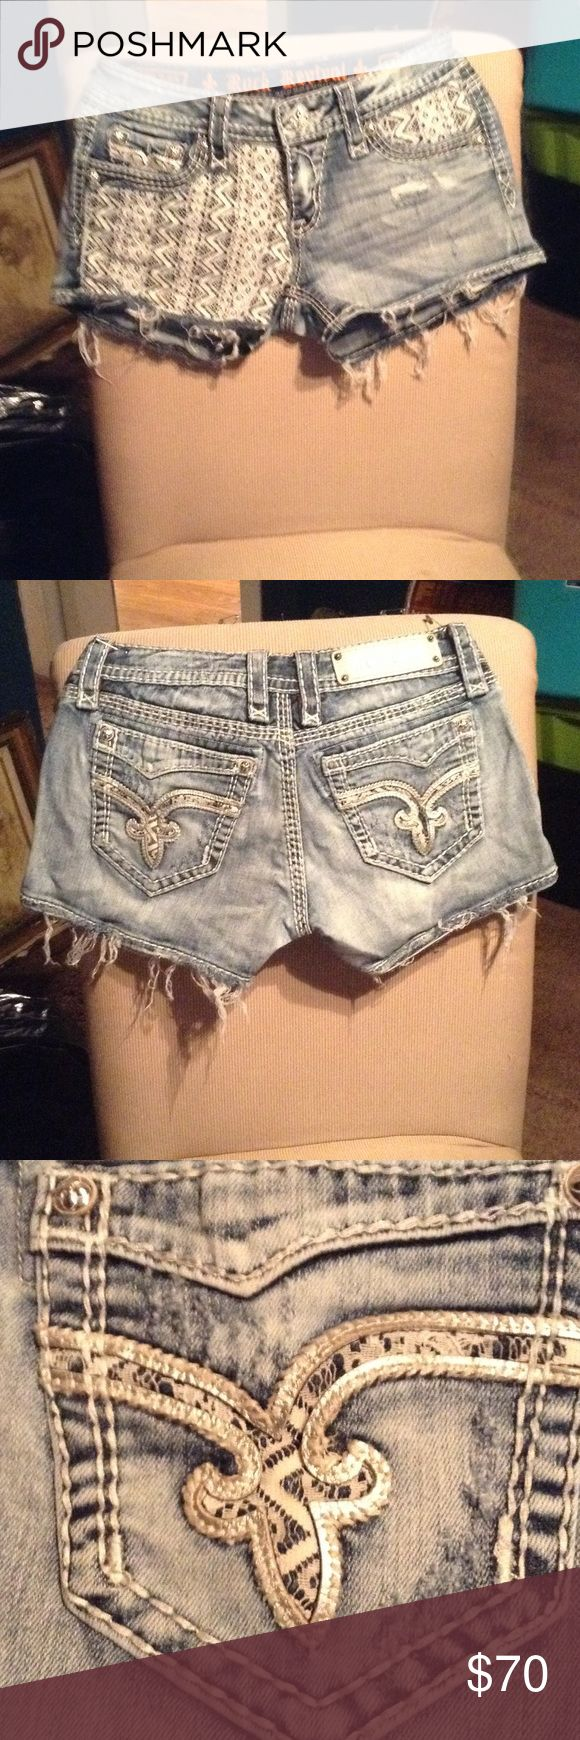 NEW ROCK REVIVAL SHORTS FROM THE BUCKLE ADORABLE THESE WERE WORE ONCE WASHED AND PUT AWAY SO THEY ARE LIKE NEW EXCELLENT CONDITION THEY ARE DISTRESSED WITH ADORABLE WHITE LACE ENLAY ON THE POCKETS AND ON THE FRONT THEY ARE THE VIVIAN STYLE AND ARE A BUCKLE EXCLUSIVE Rock Revival Shorts Skorts